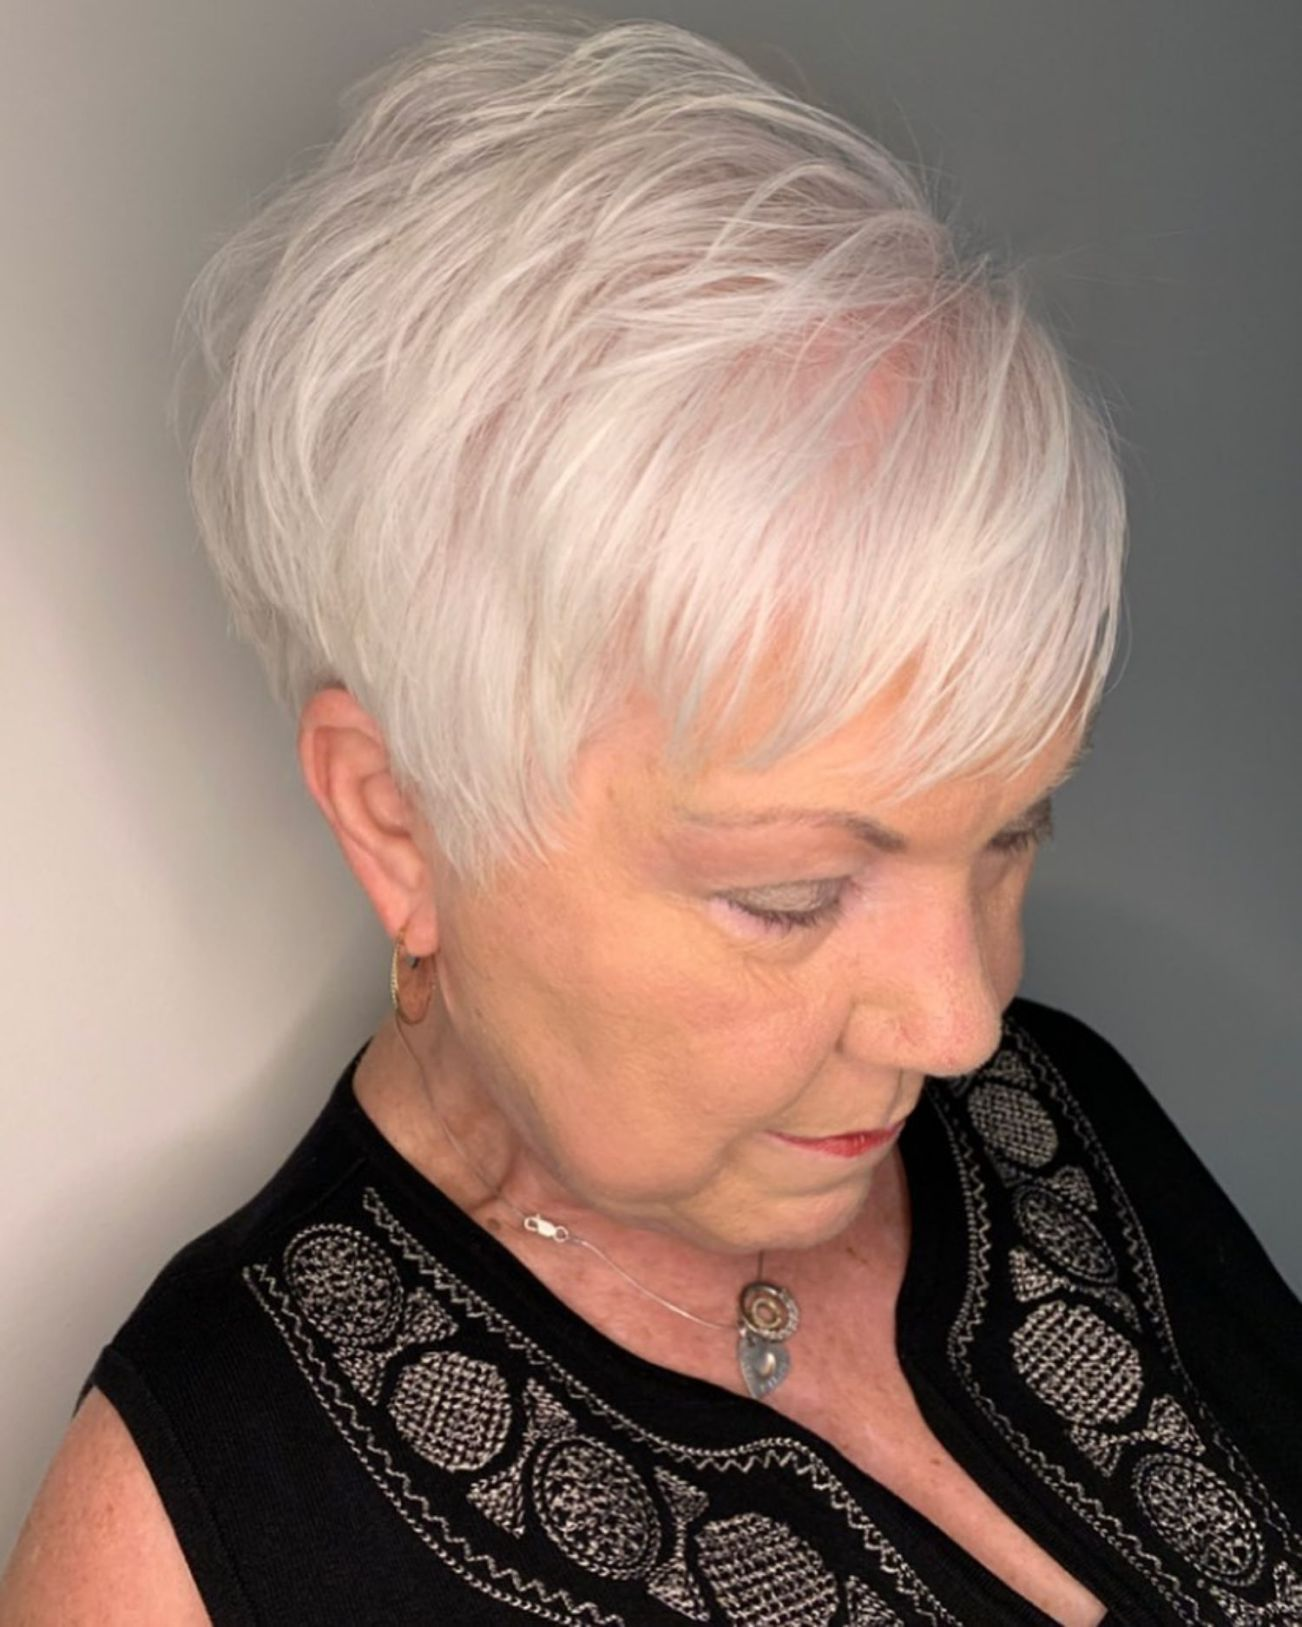 Feathered Pixie Haircut For Women Over 70